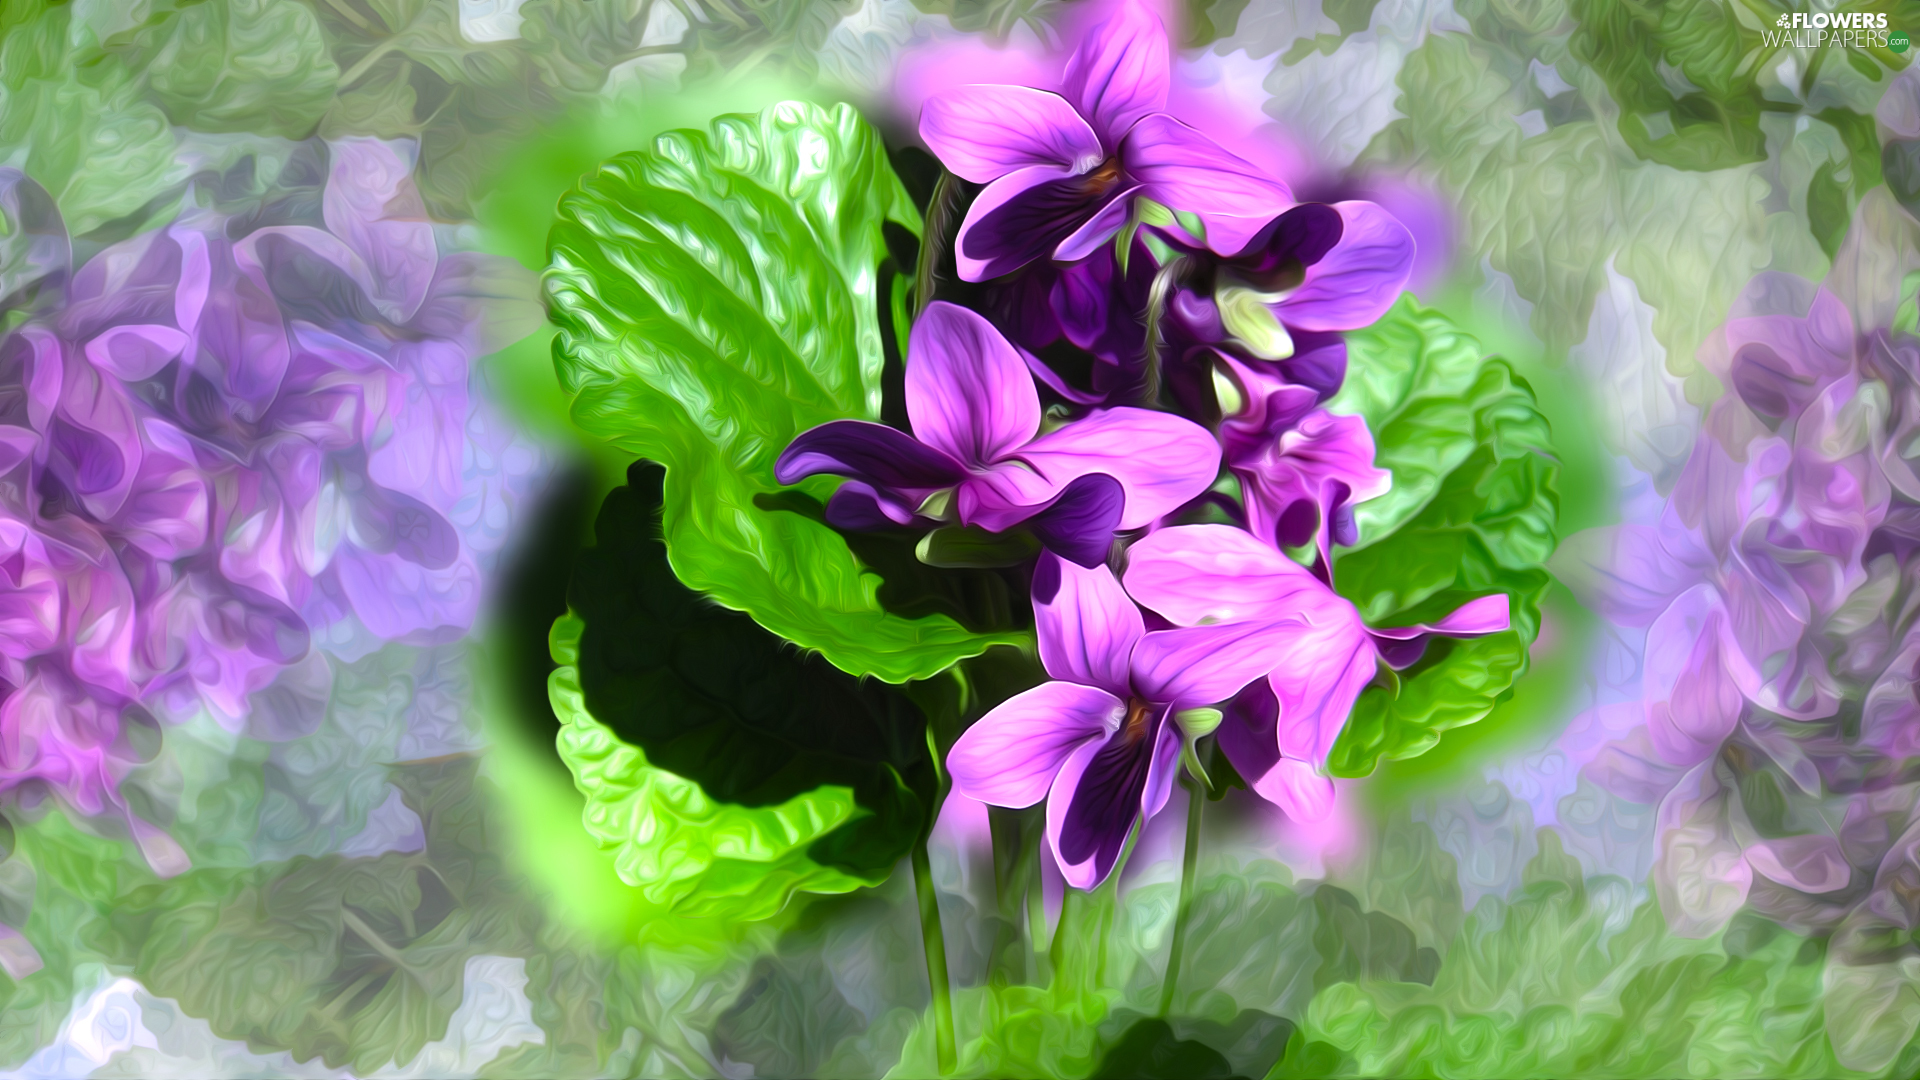 Flowers, leaves, graphics, fragrant violets